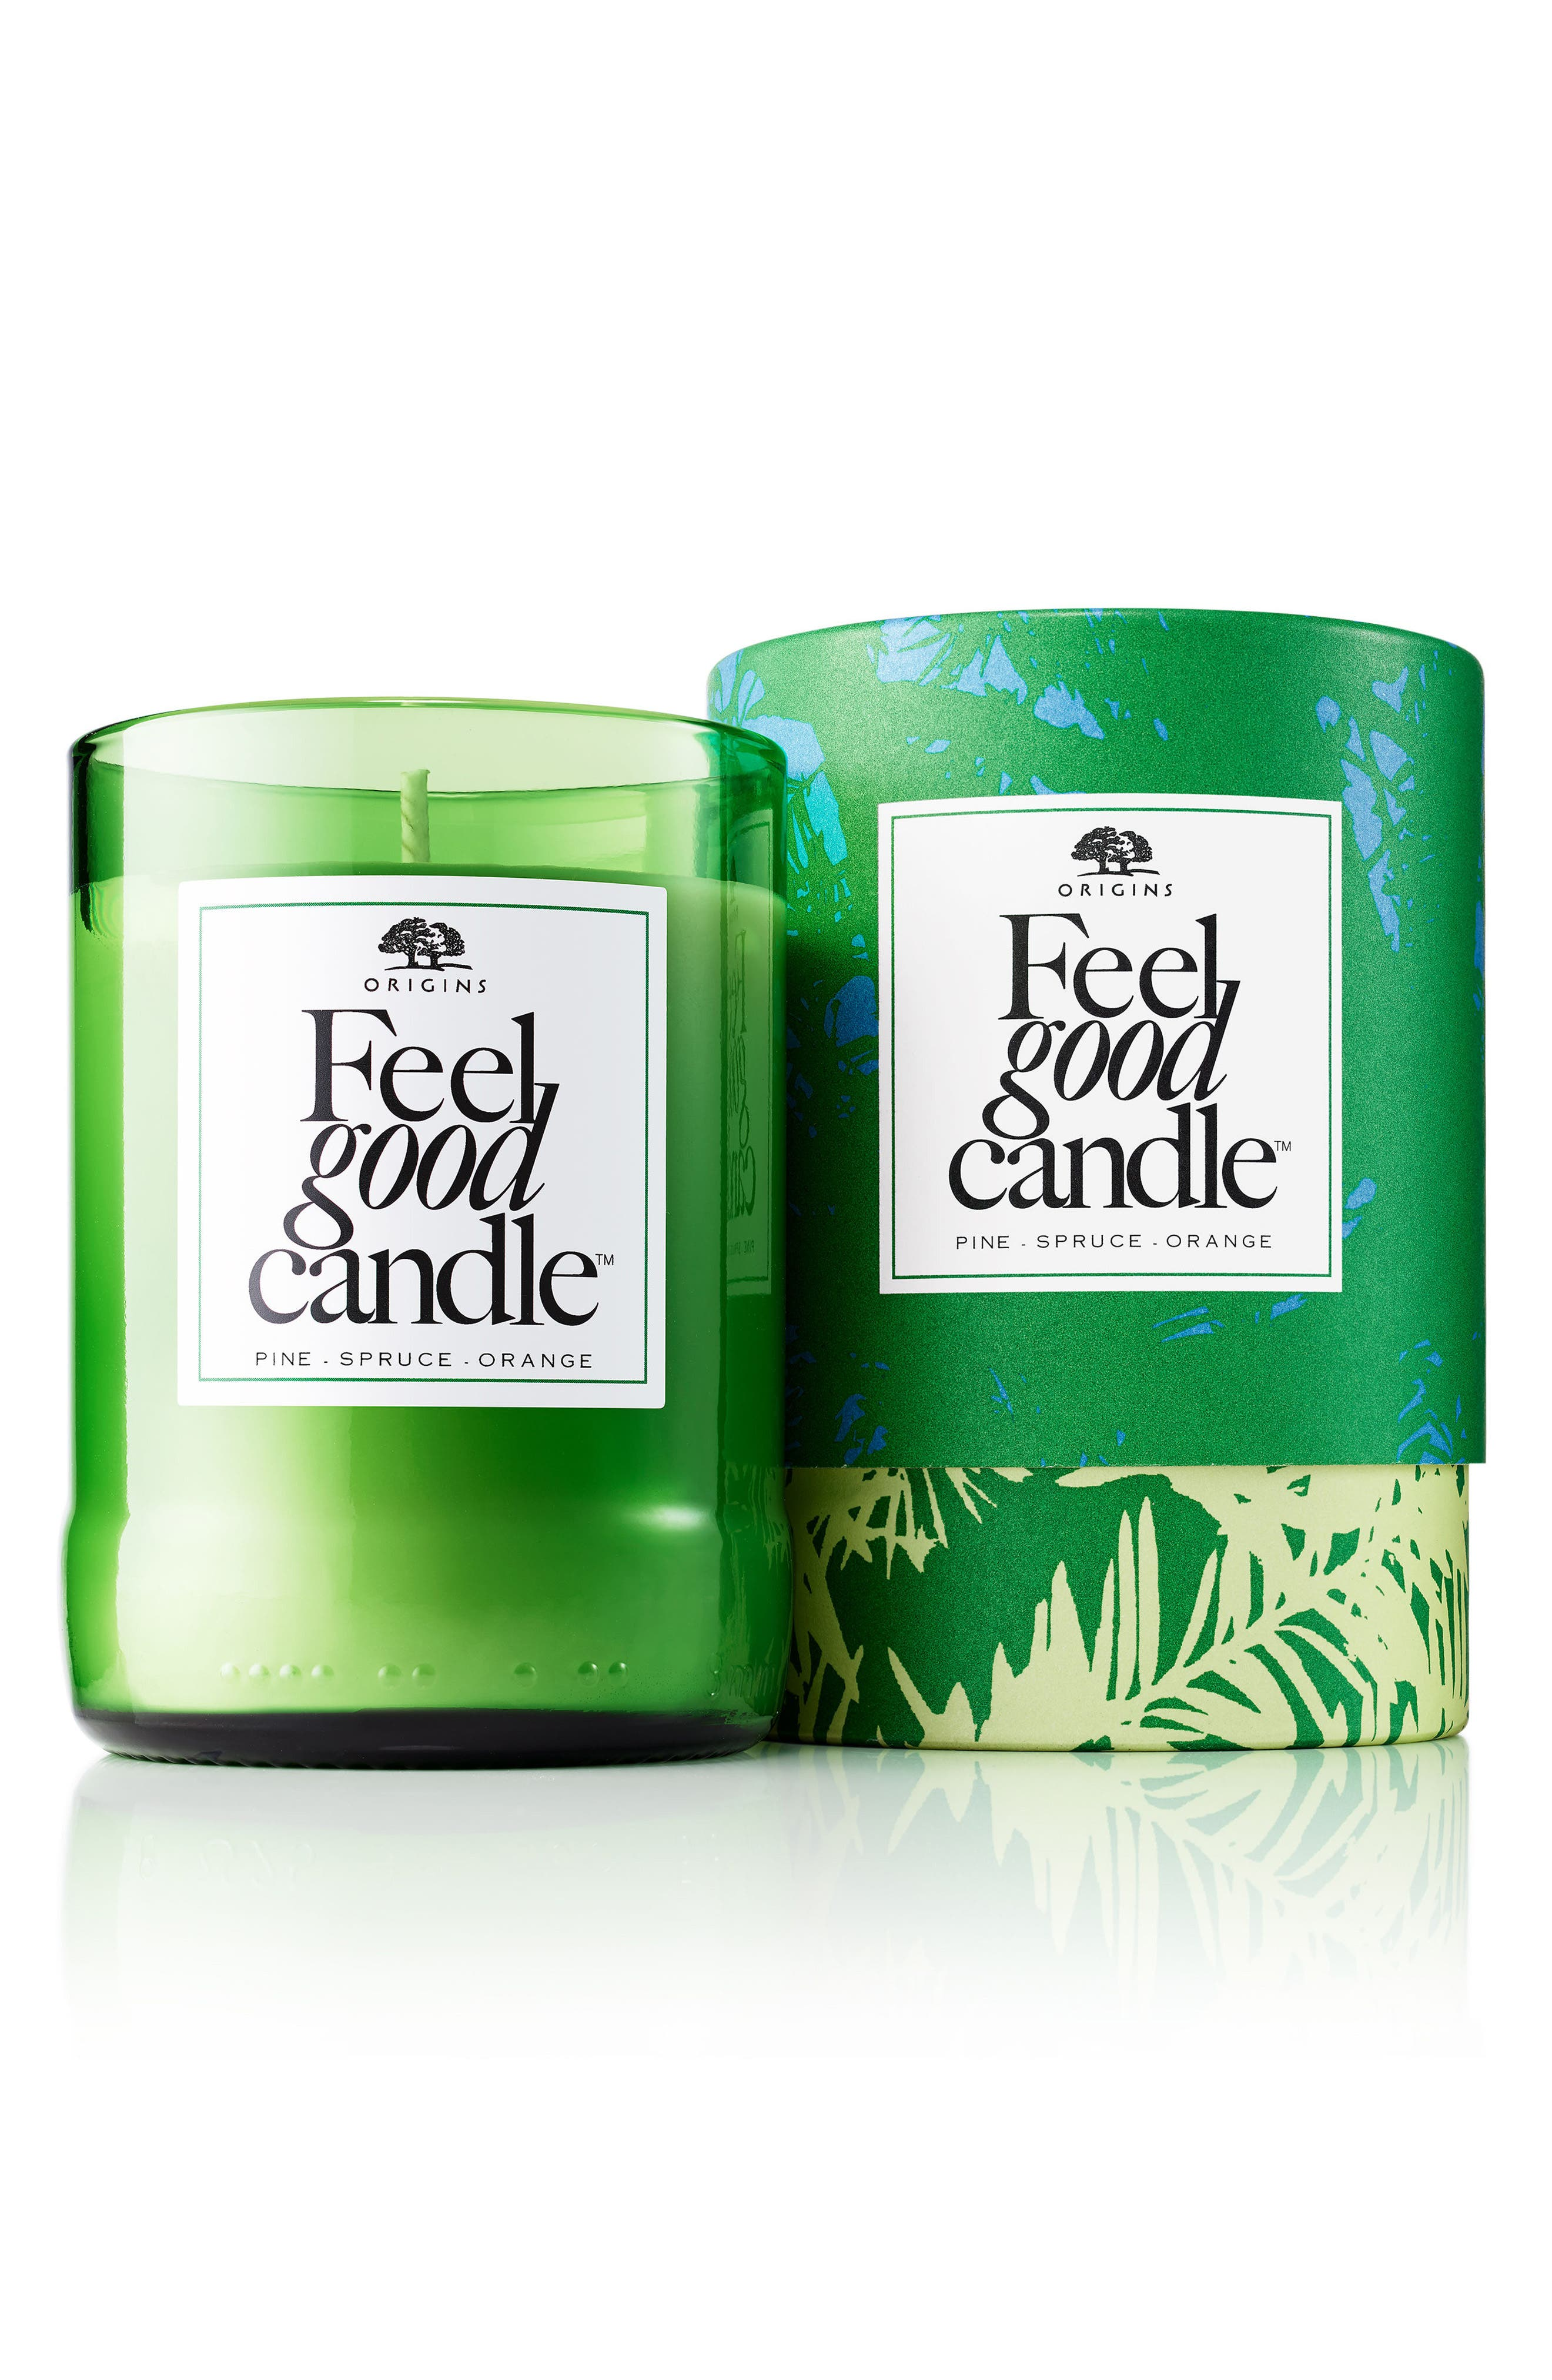 Origins Pine, Spruce & Orange Feel Good Candle (Limited Edition)